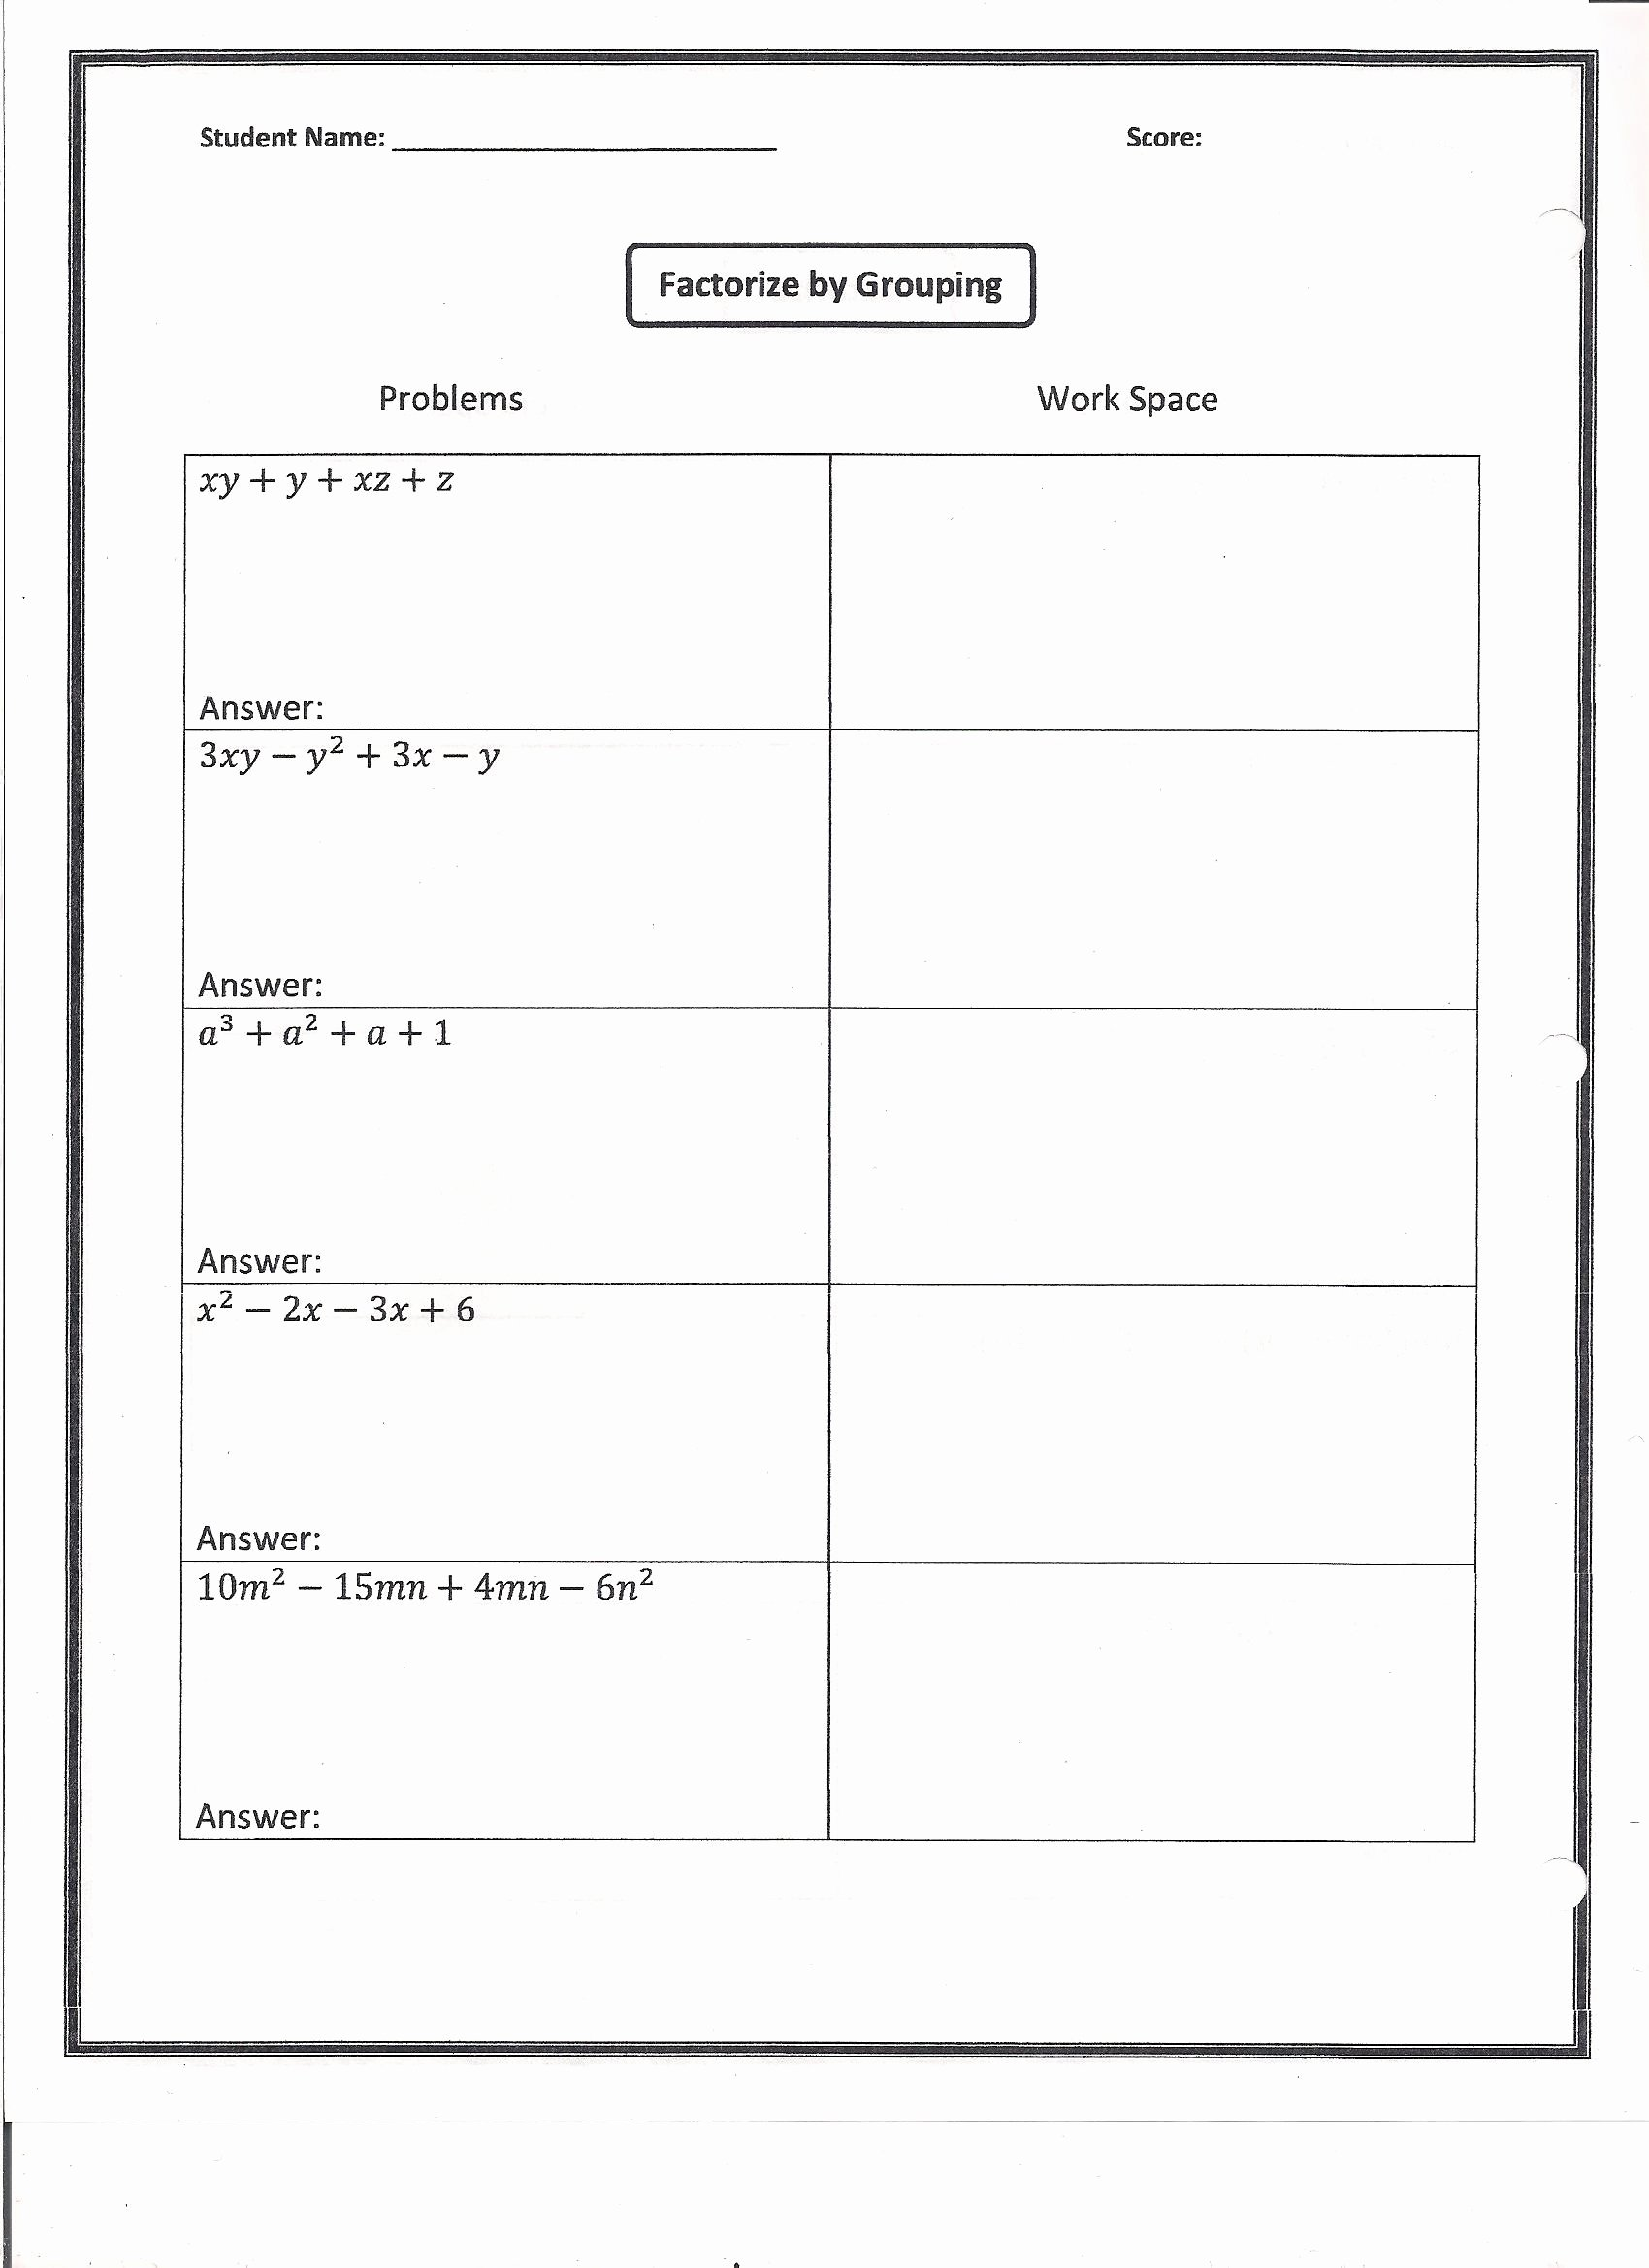 50 Factoring By Grouping Worksheet Answers